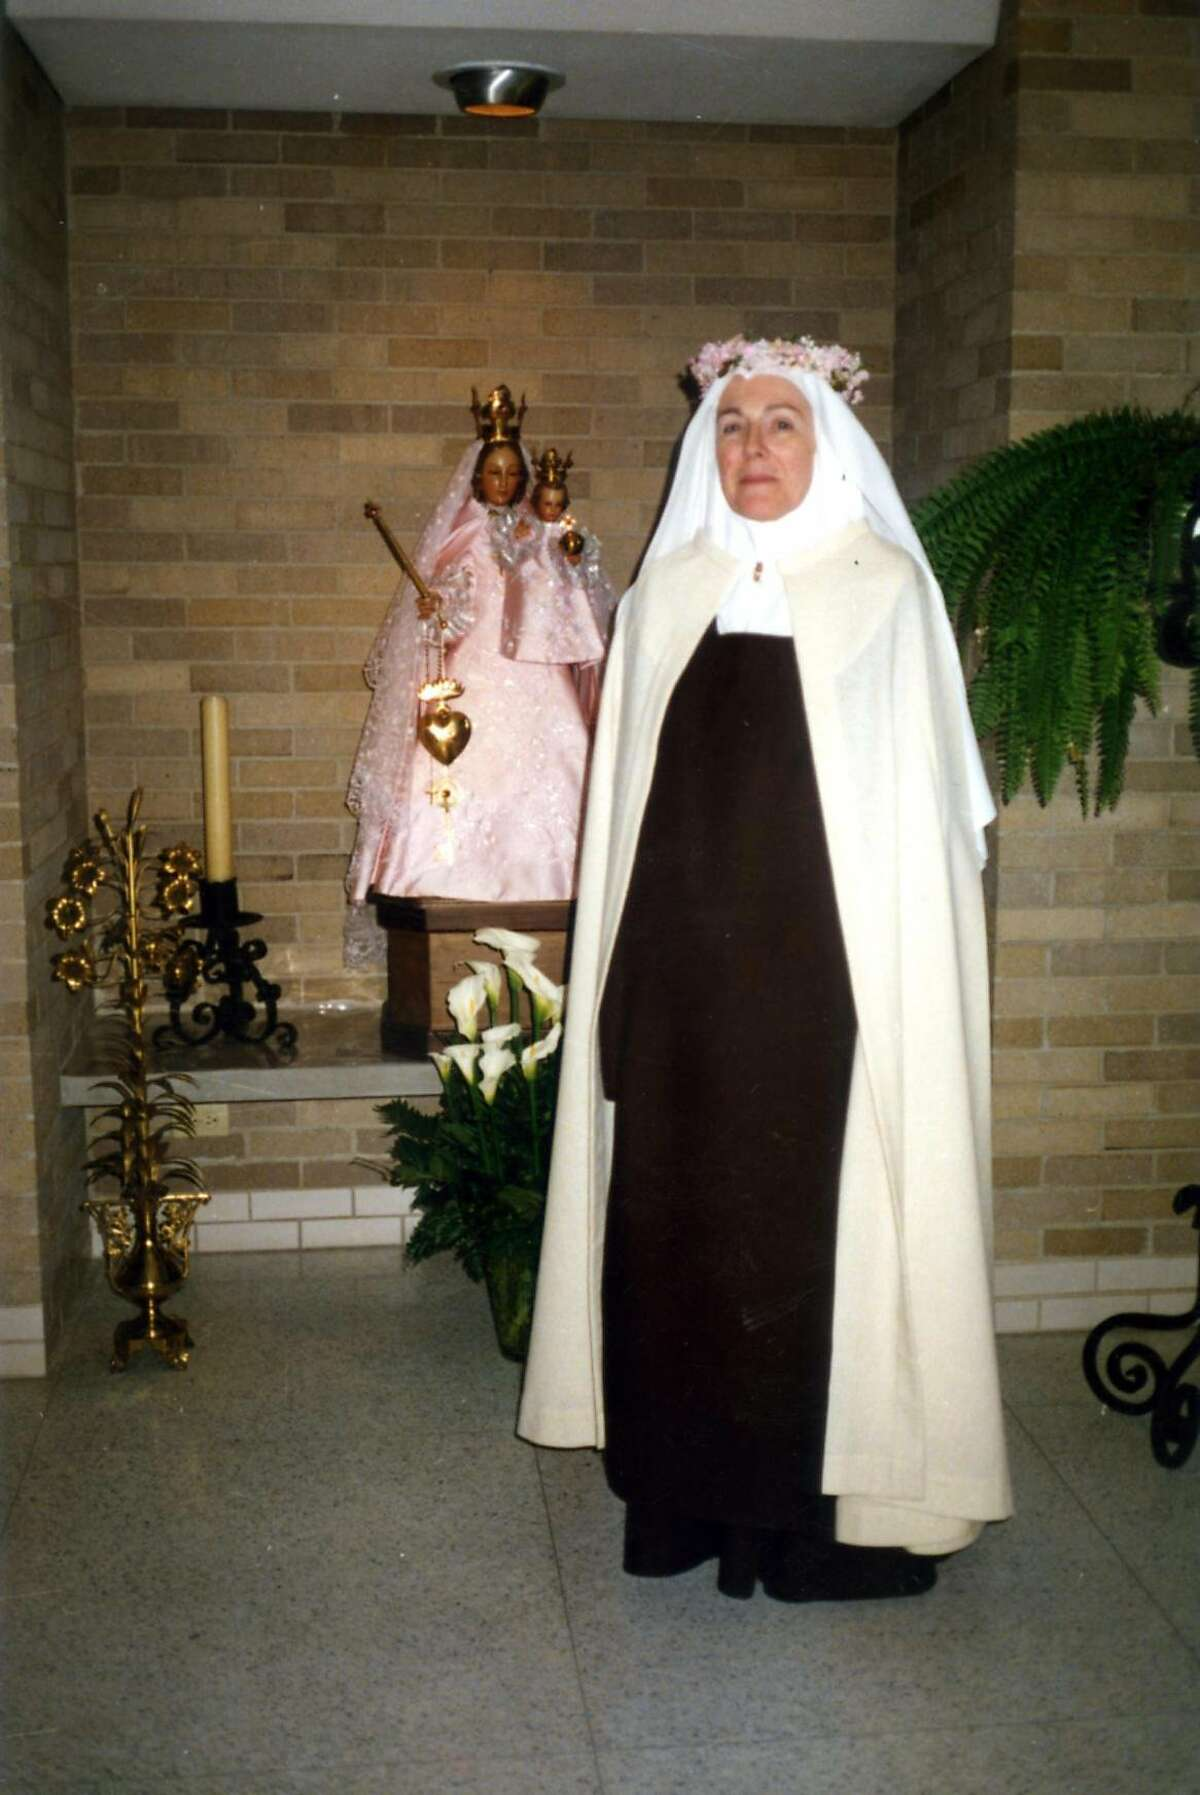 Sister Mary Joseph on the day she became a postulant, 1990.